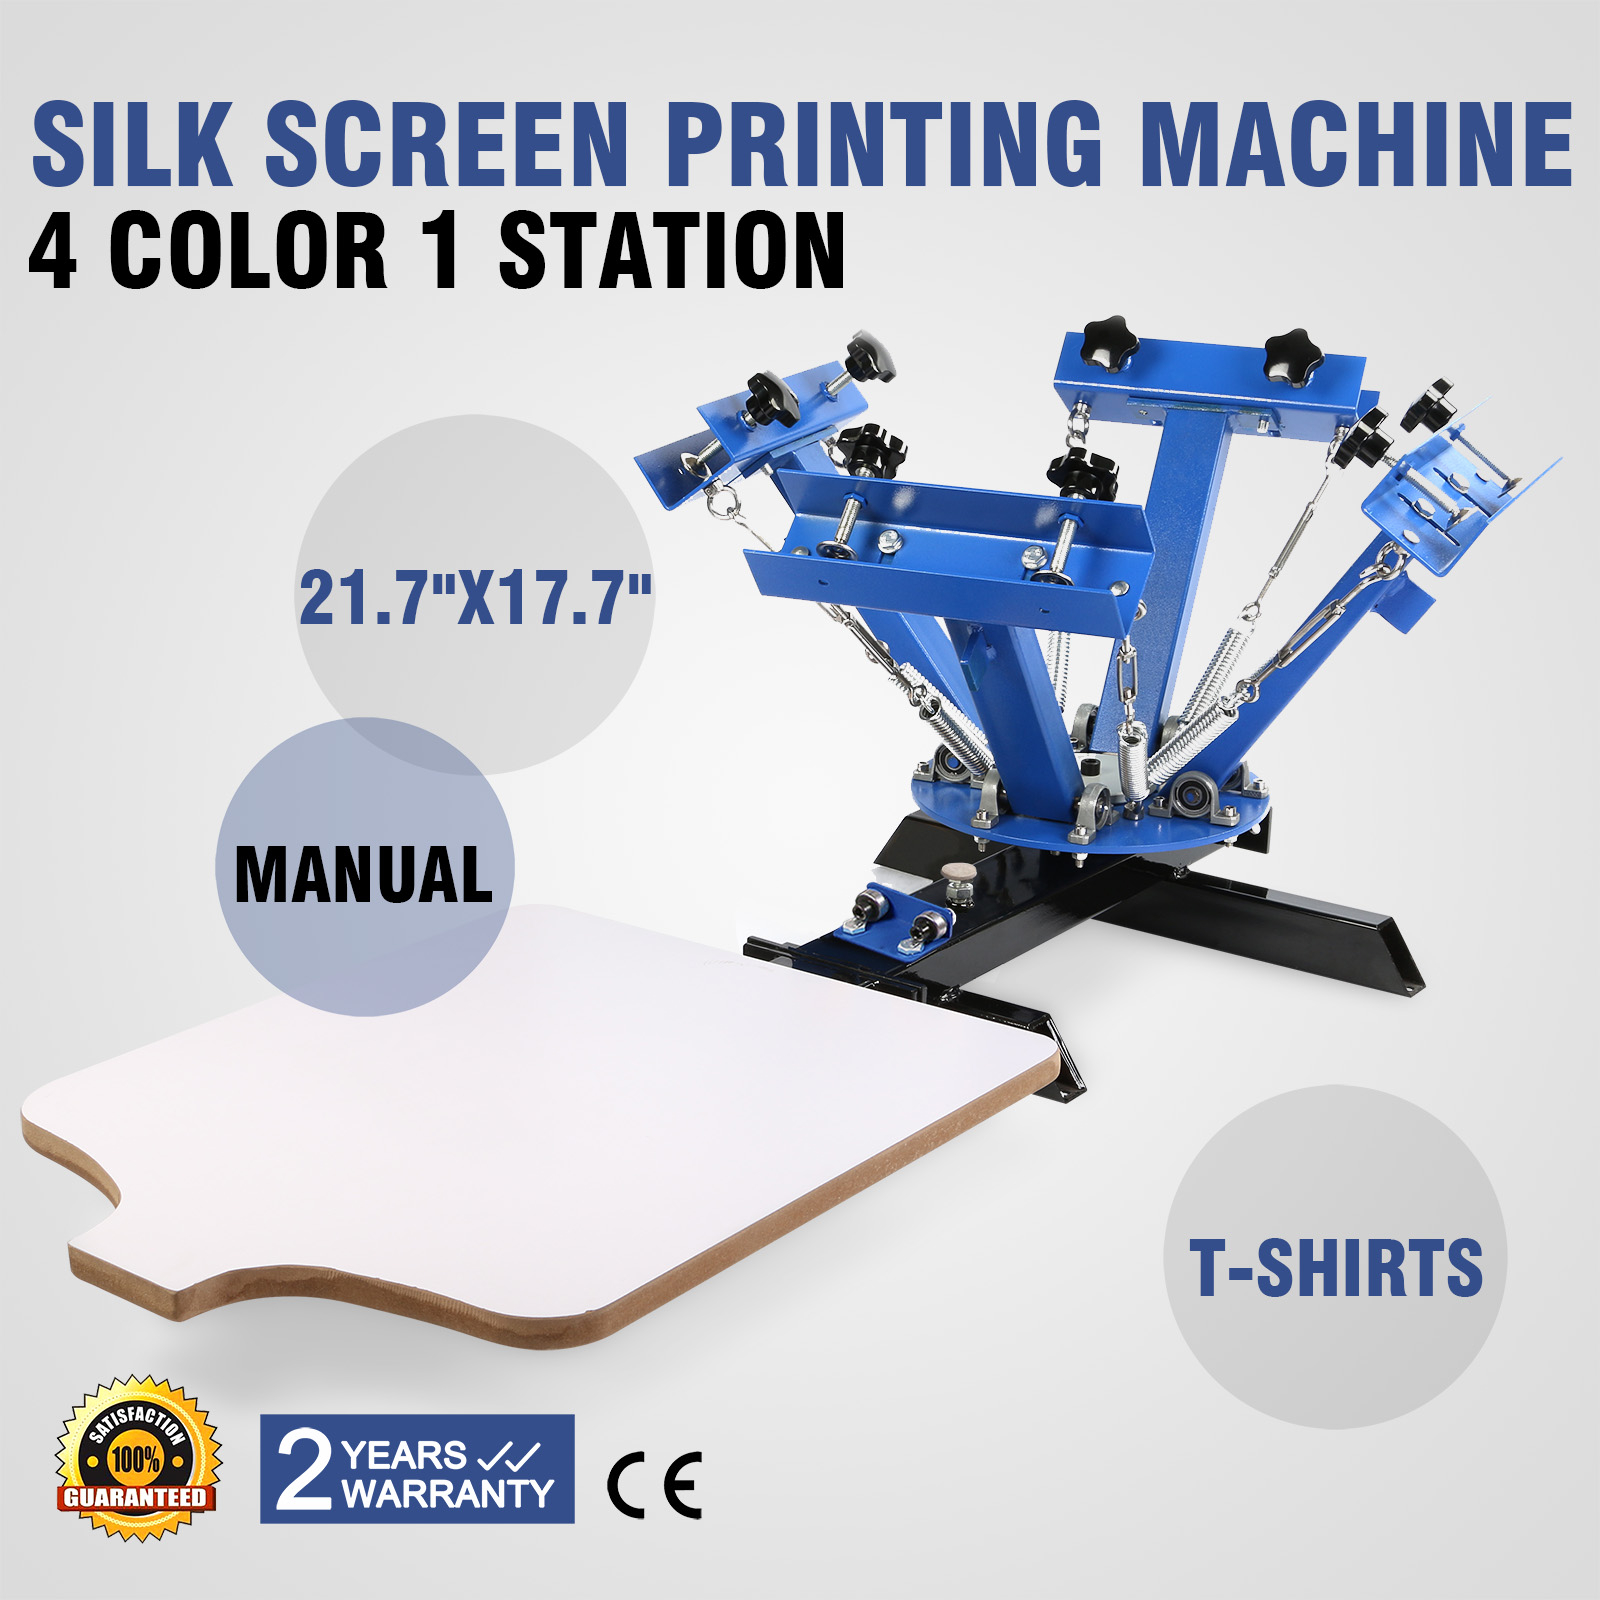 Diy Screen Printing Shirts Details About 4 Color 1 Station Screen Printing Machine Diy T Shirt Press Printer